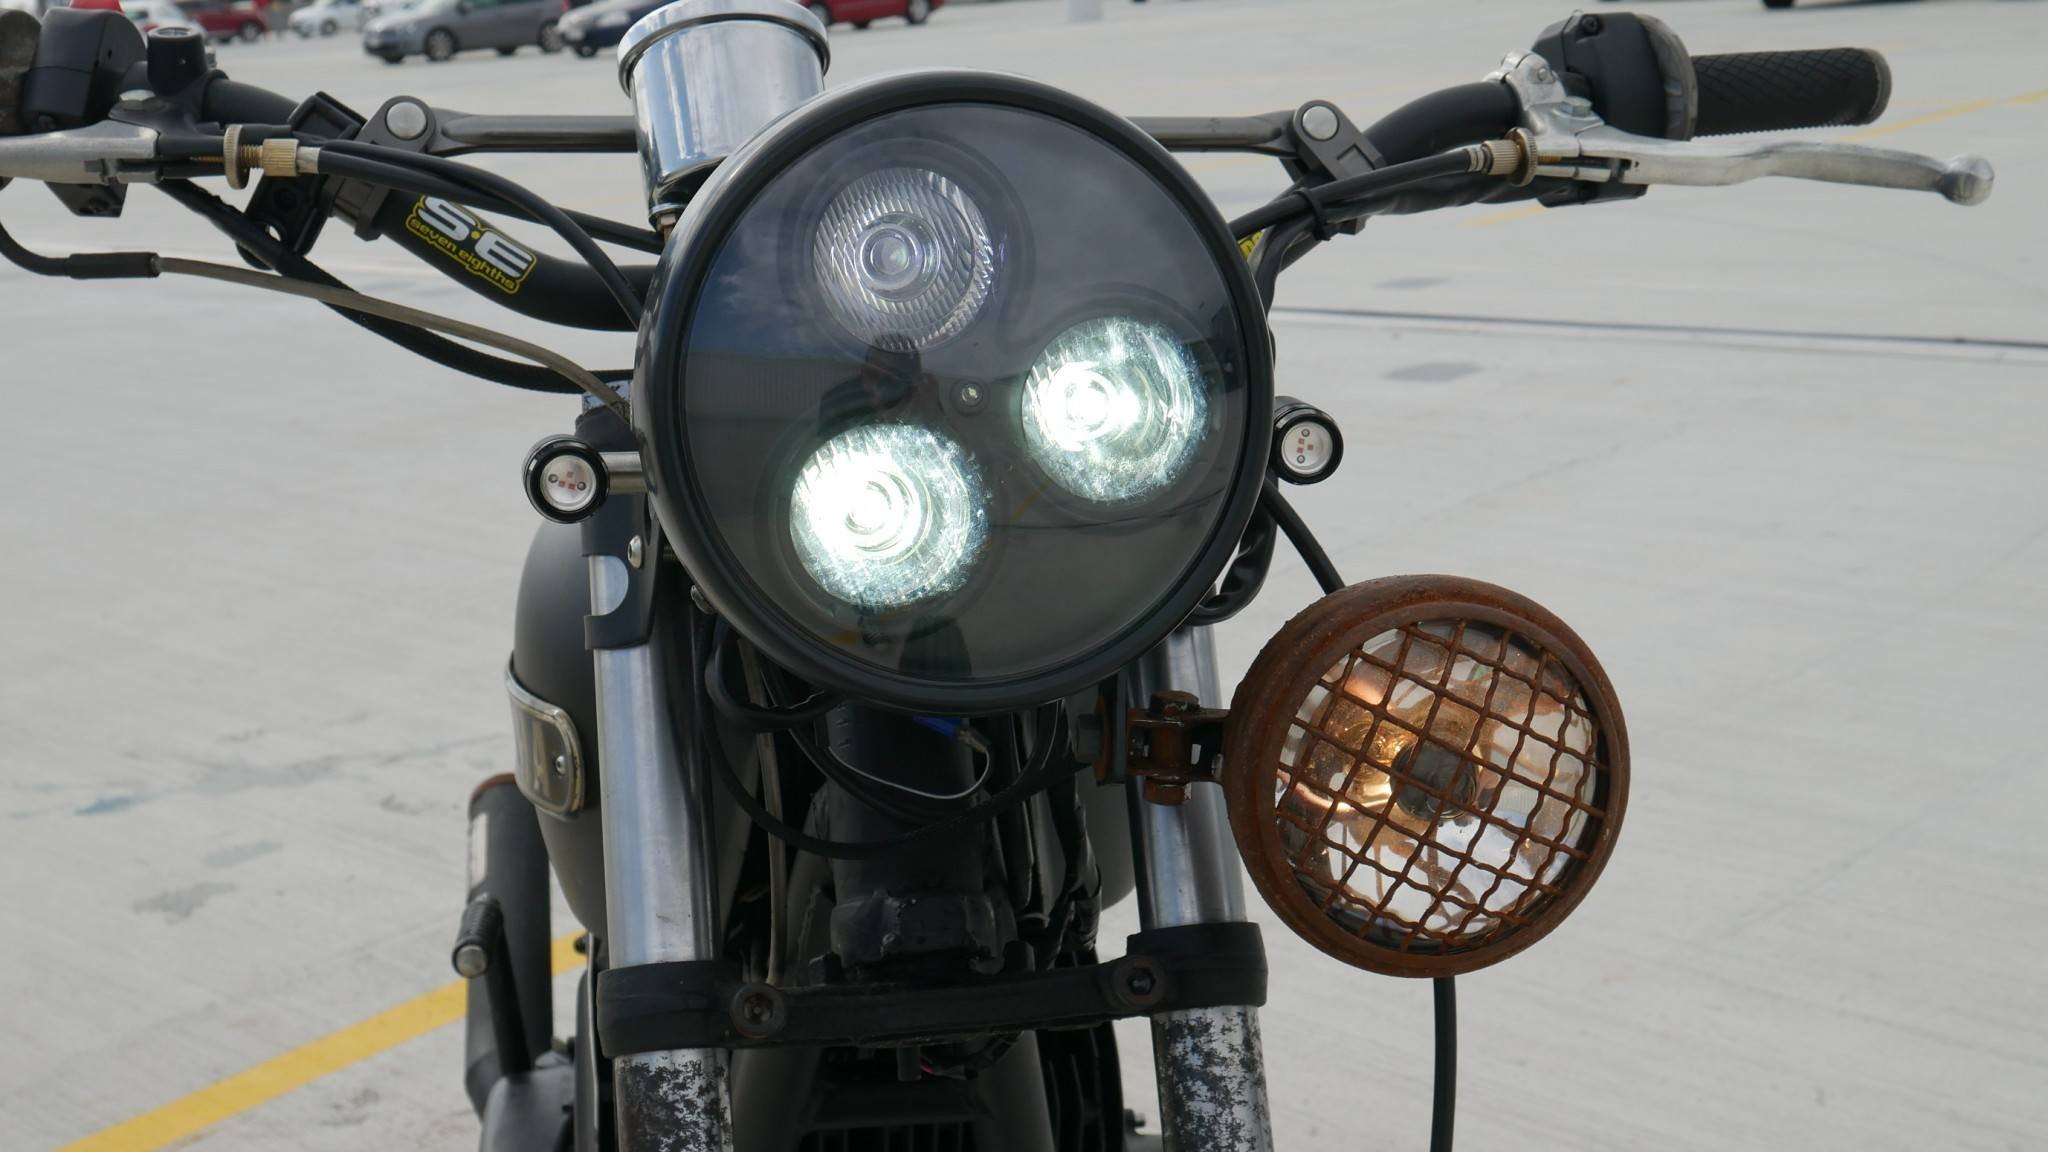 LED turn signals 2 stroke vintage racer headlight motorcycle parts